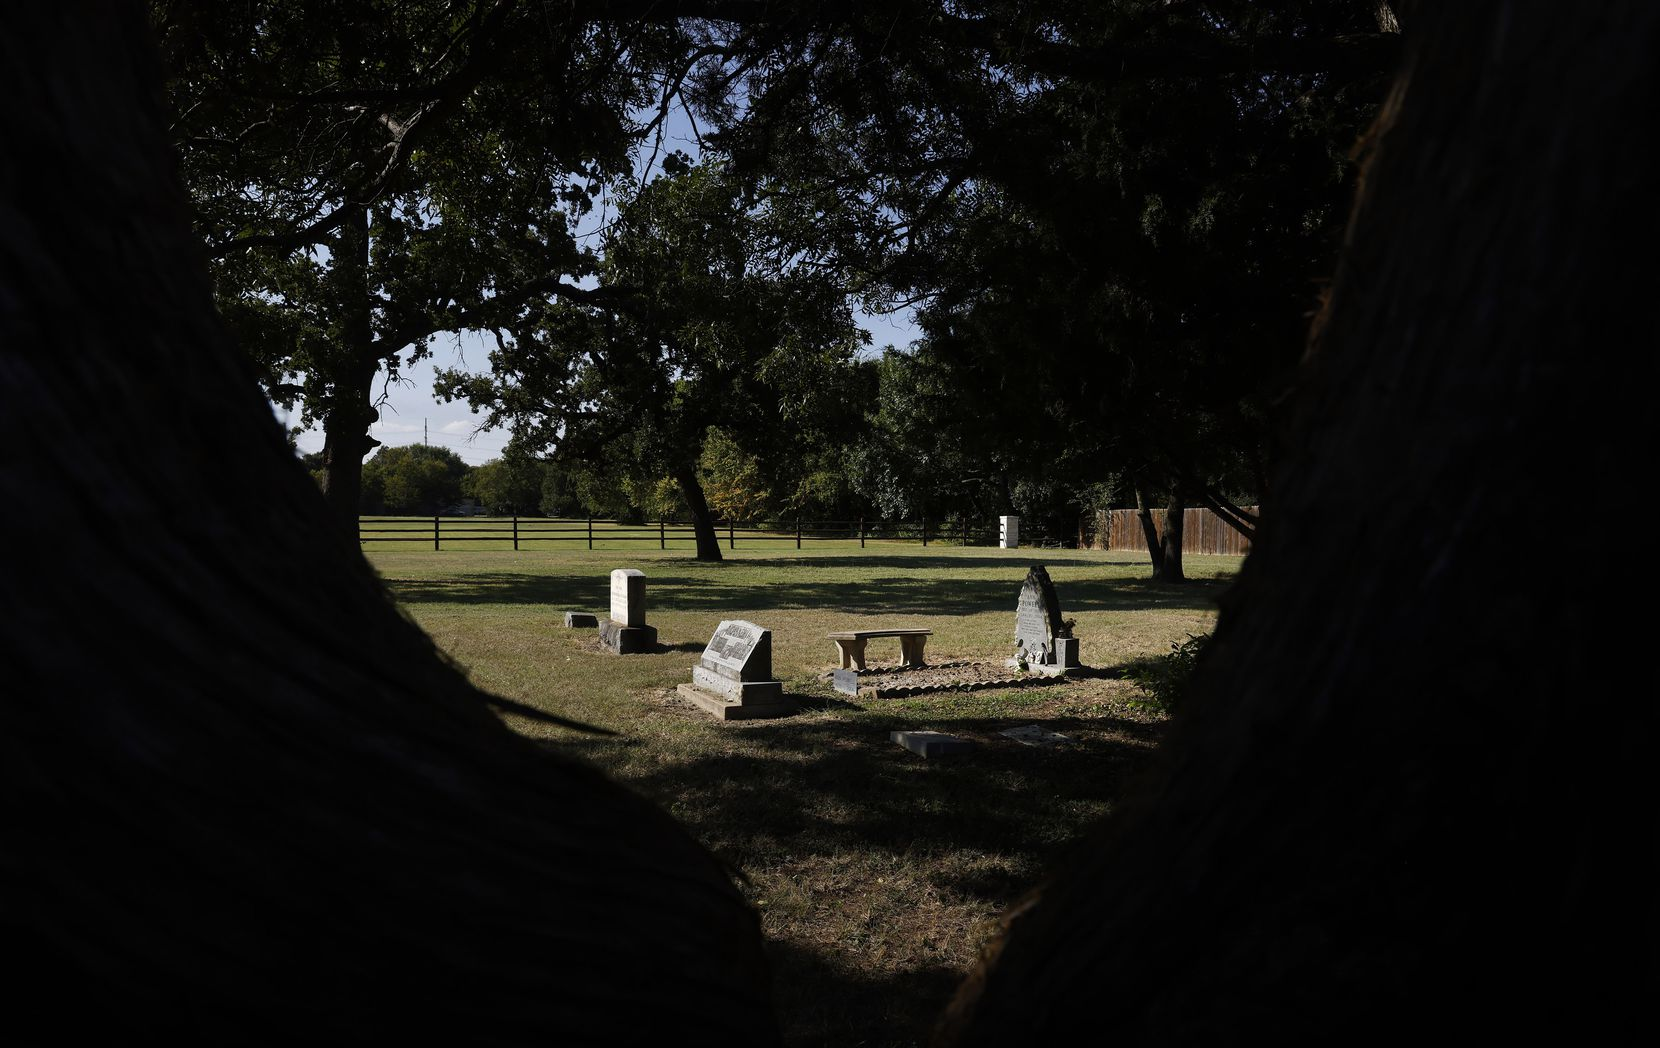 Lonesome Dove Cemetery in Southlake, Texas, is one of the oldest cemeteries in the state. Legend has it that the adjacent church of the same name was the first non-Catholic church between North Texas and the Pacific Ocean. Most of the early settlers were from Missouri.